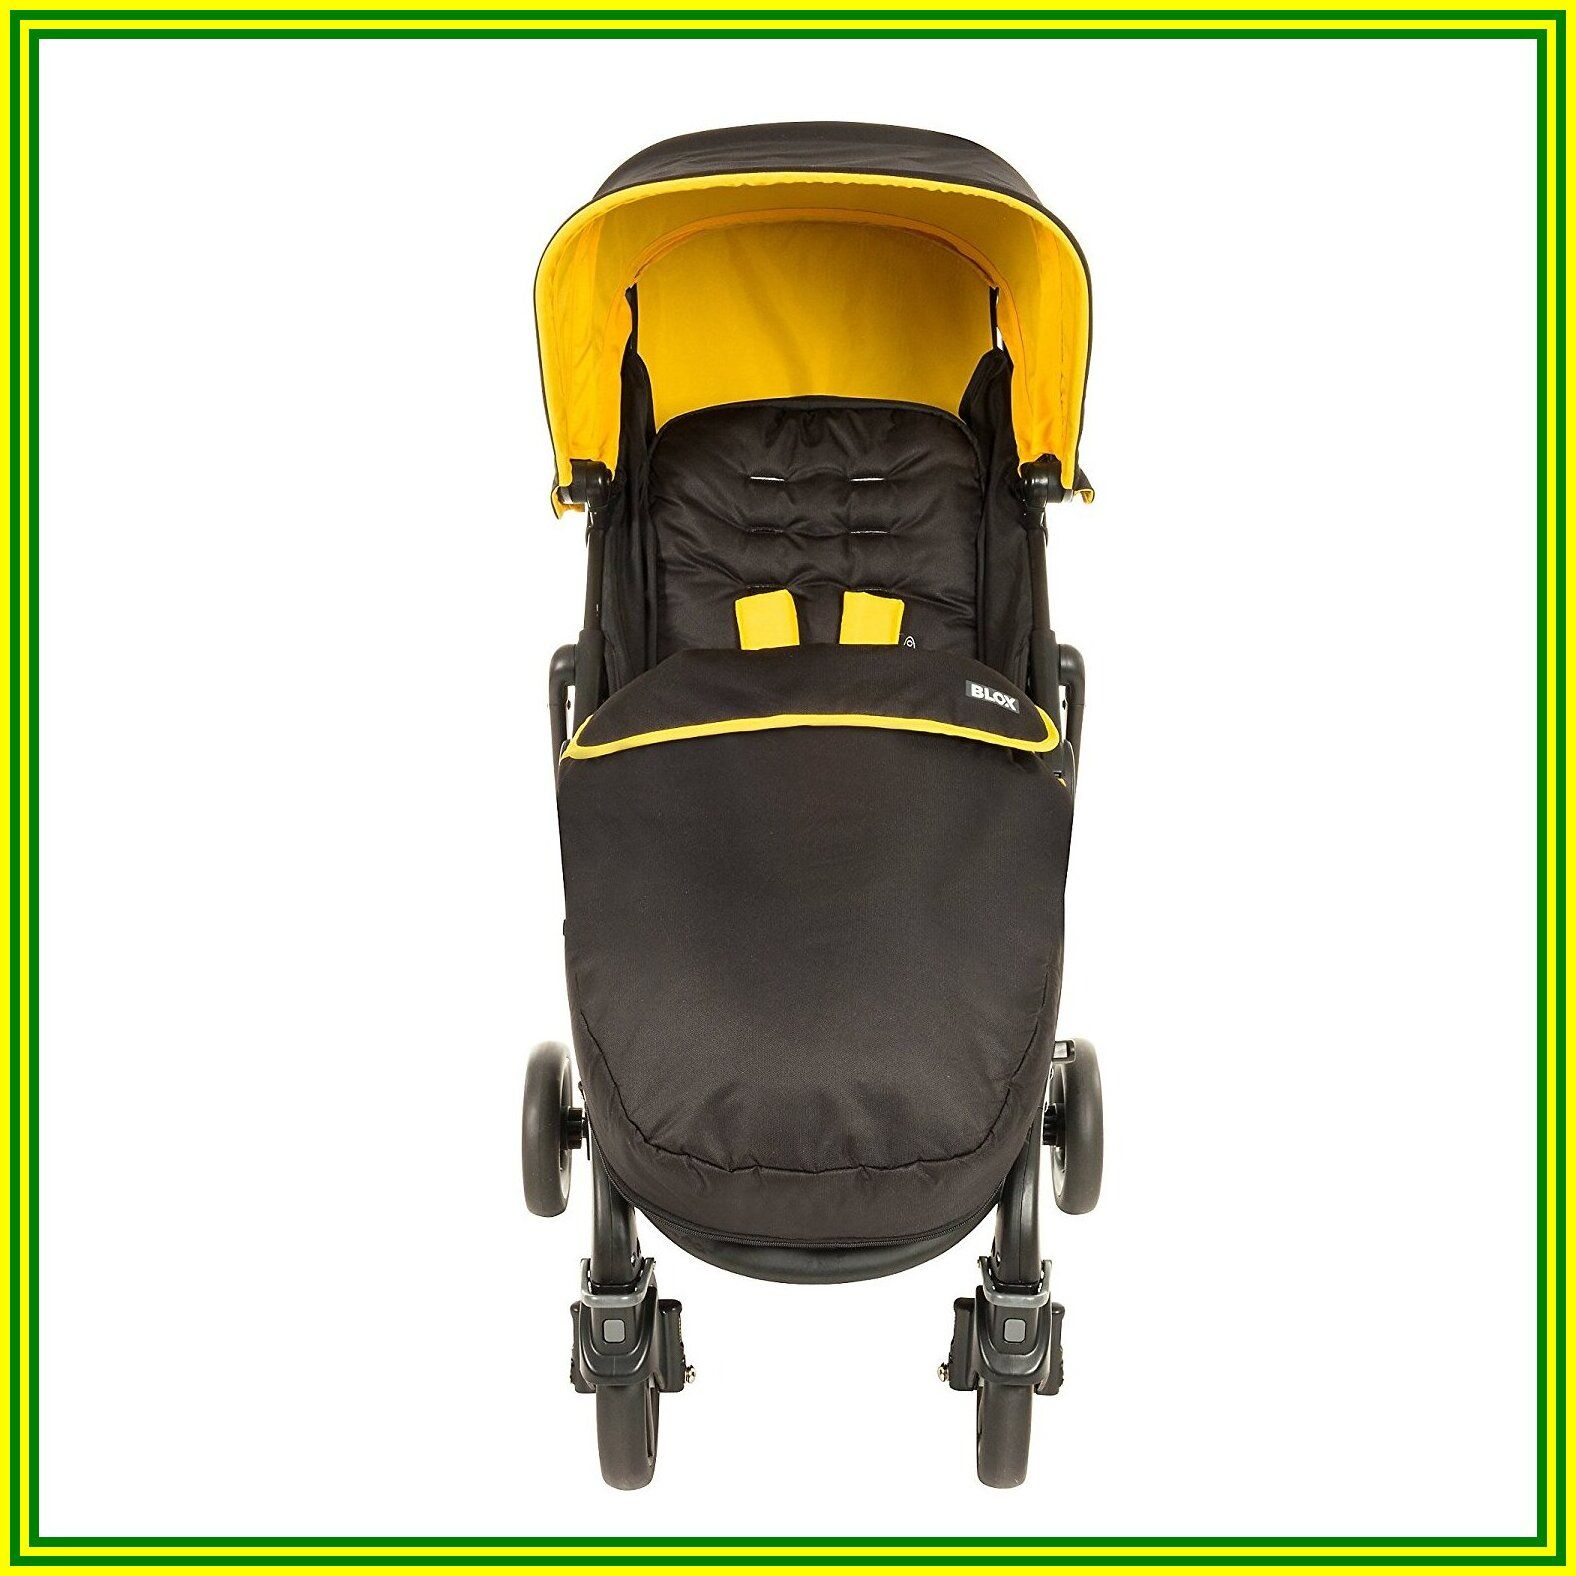 119 reference of graco stroller yellow in 2020 Graco